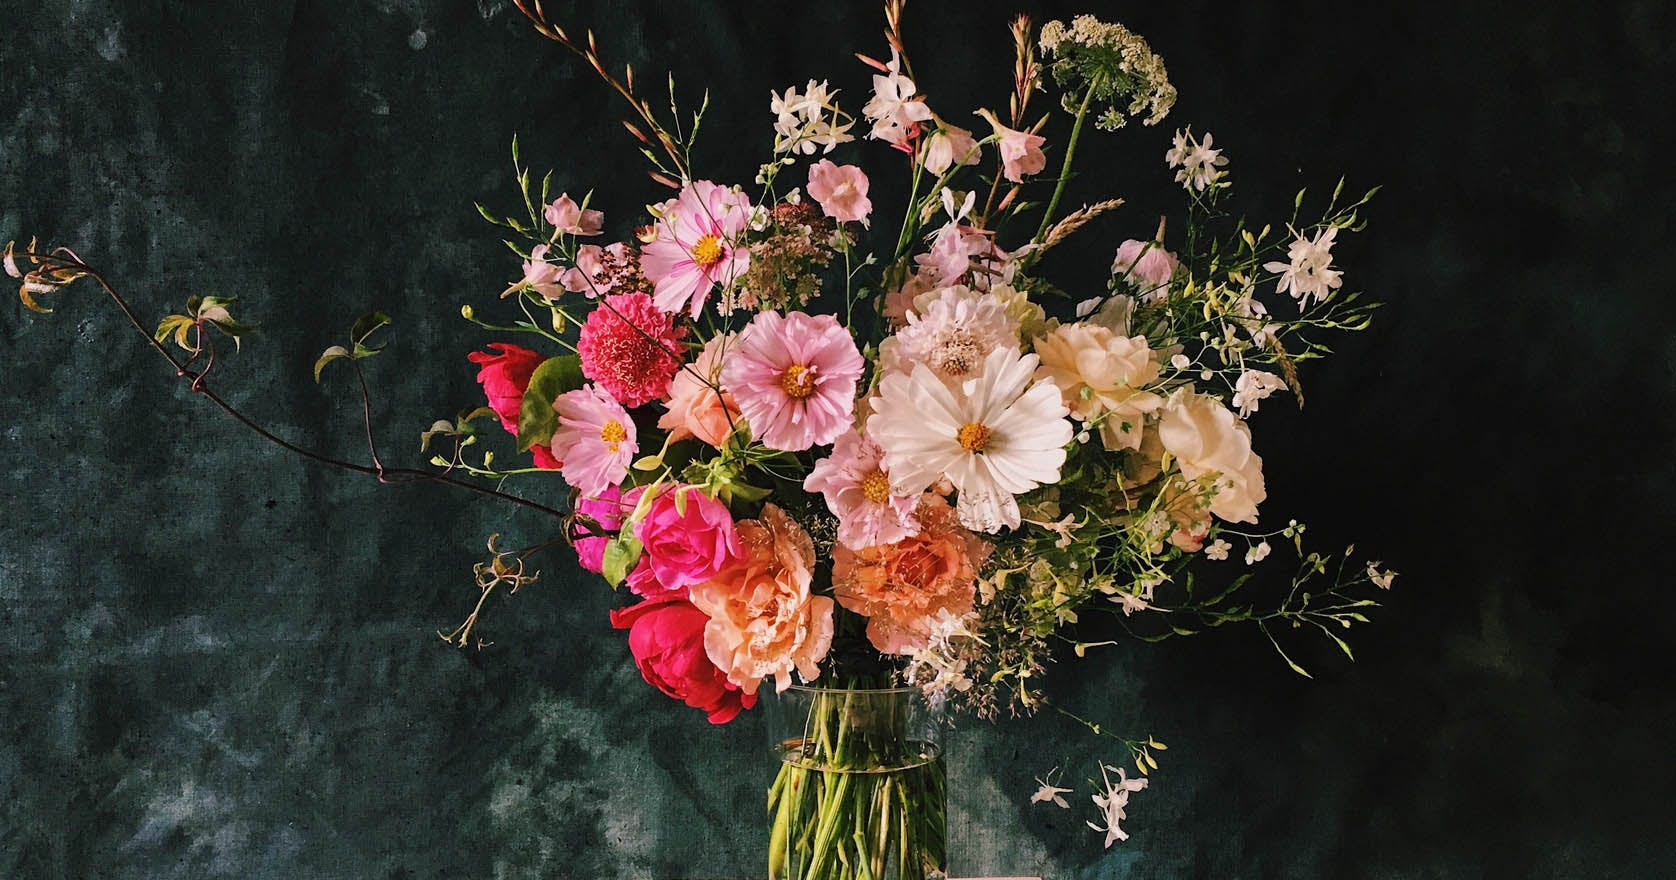 How to Keep Flowers Fresh (Because That Bouquet Cost Too Much to Wilt After 48 Hours)